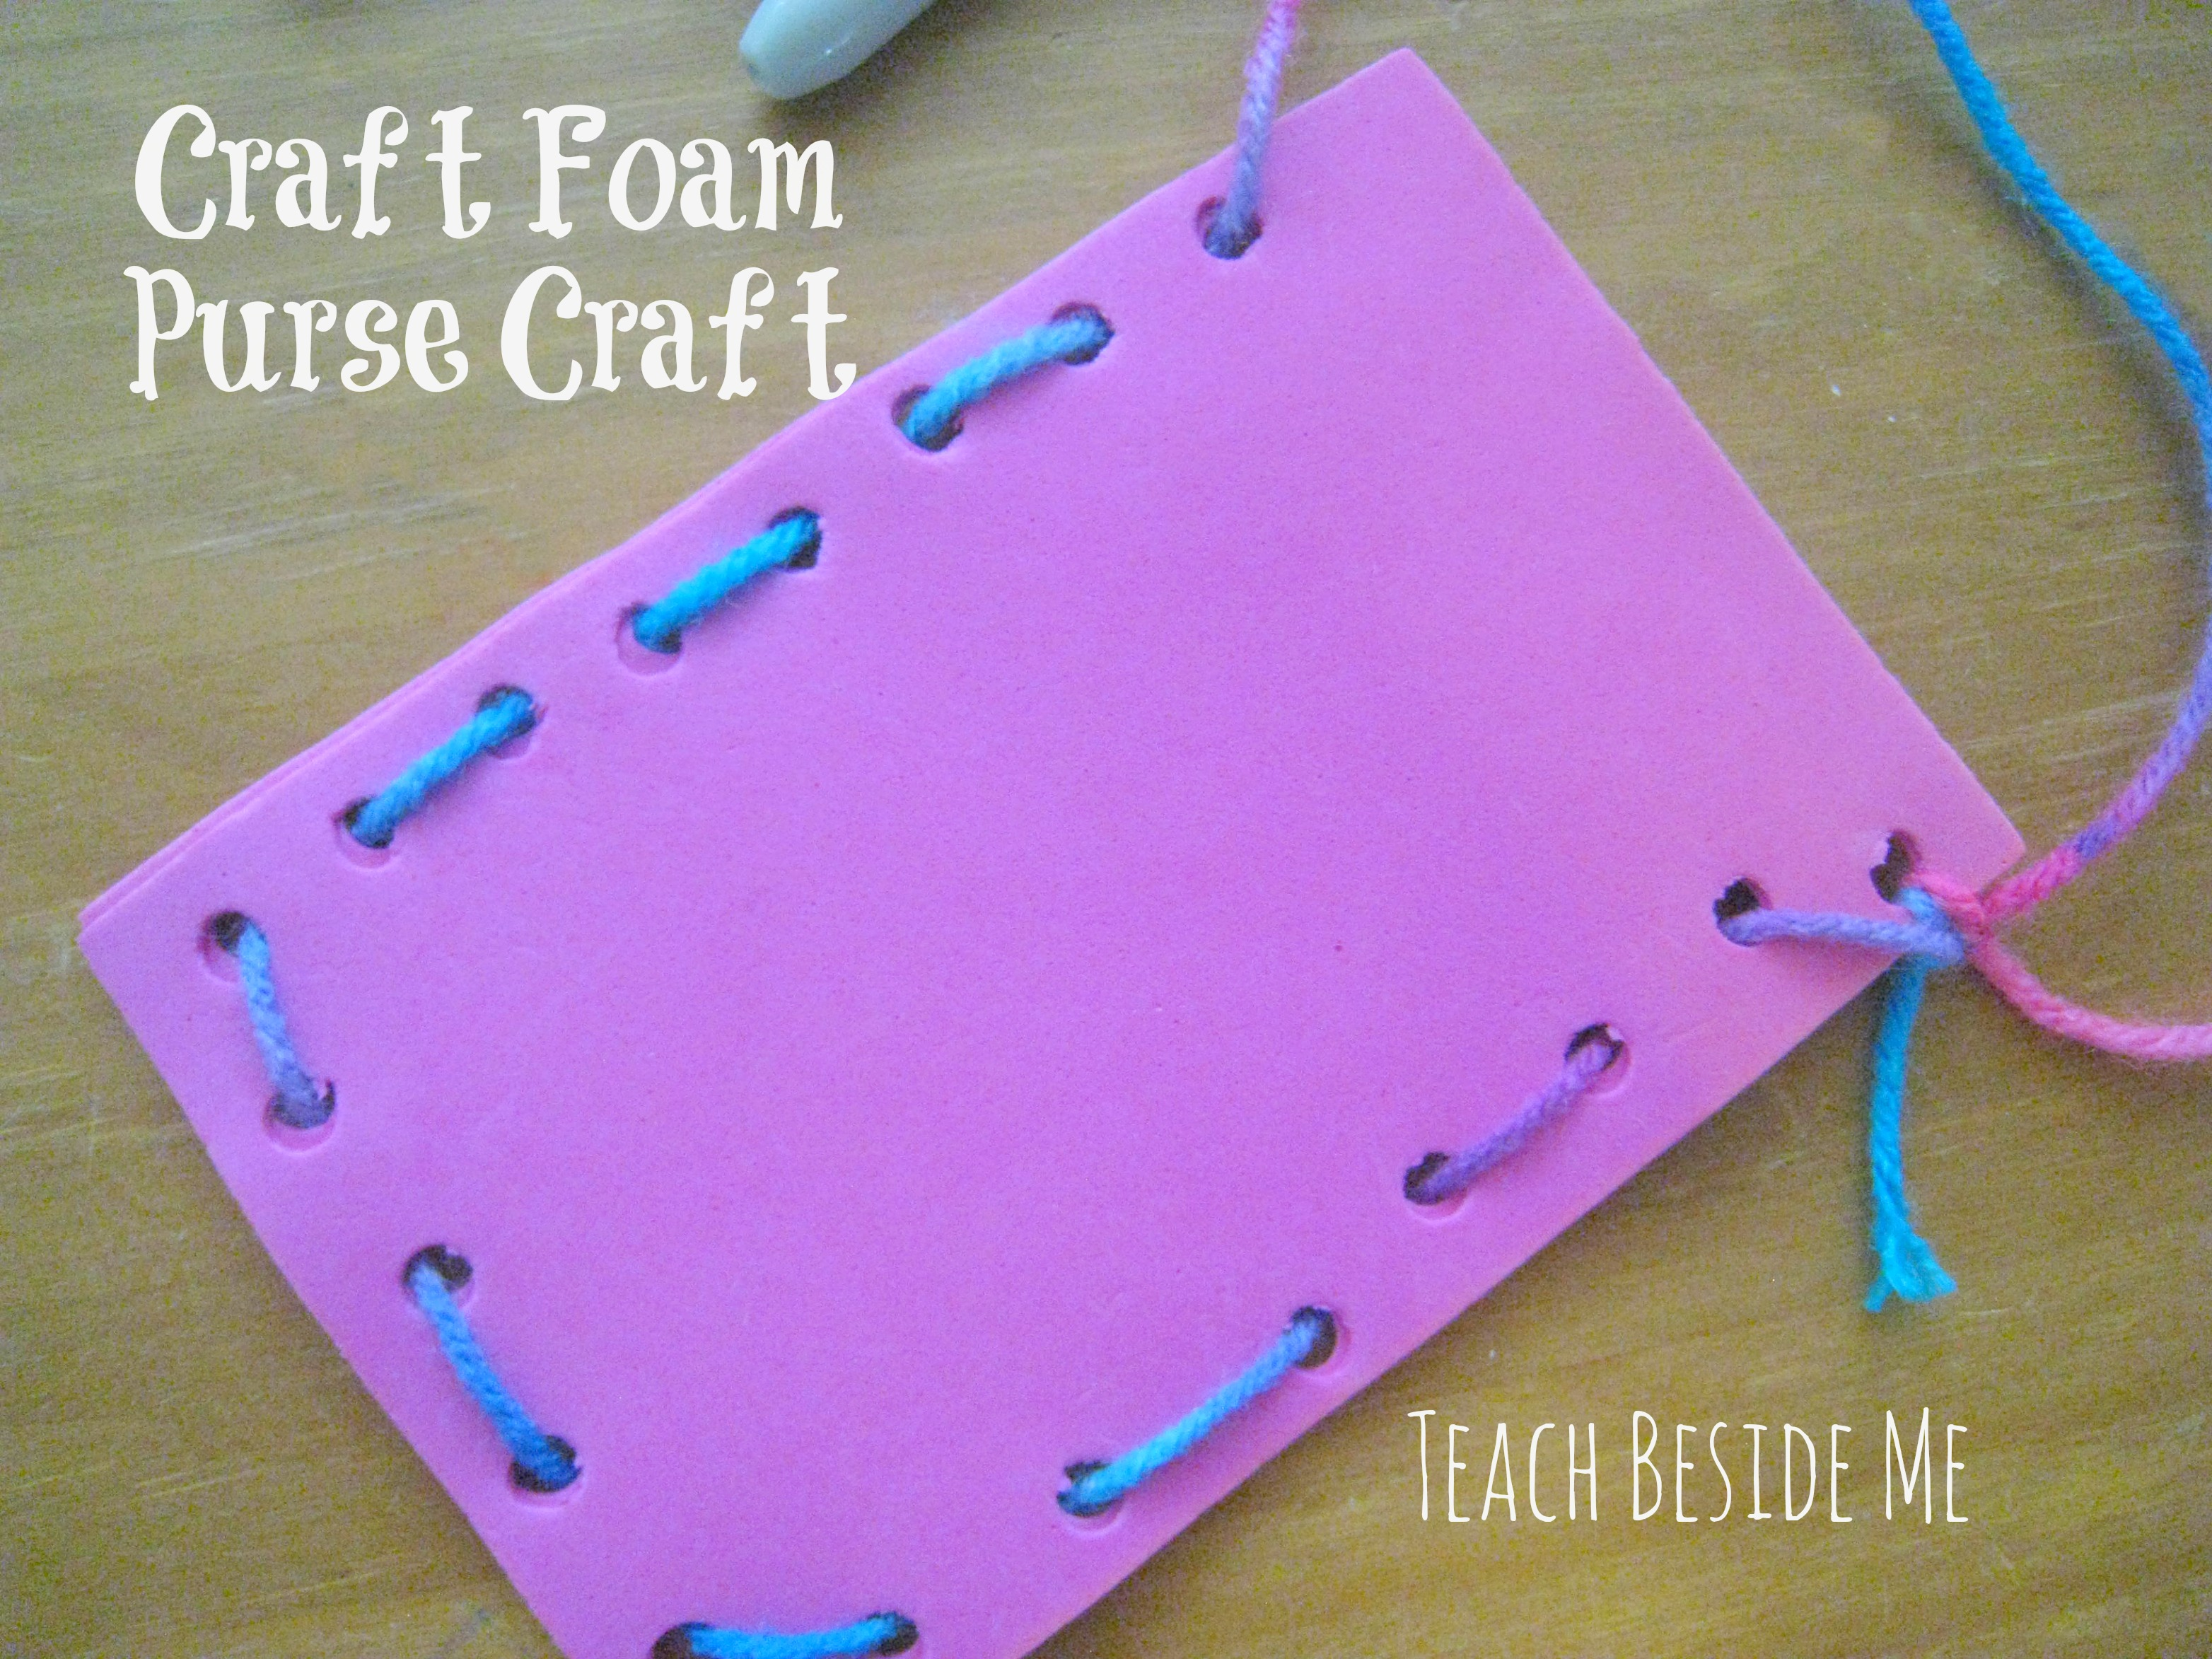 Craft foam purse craft